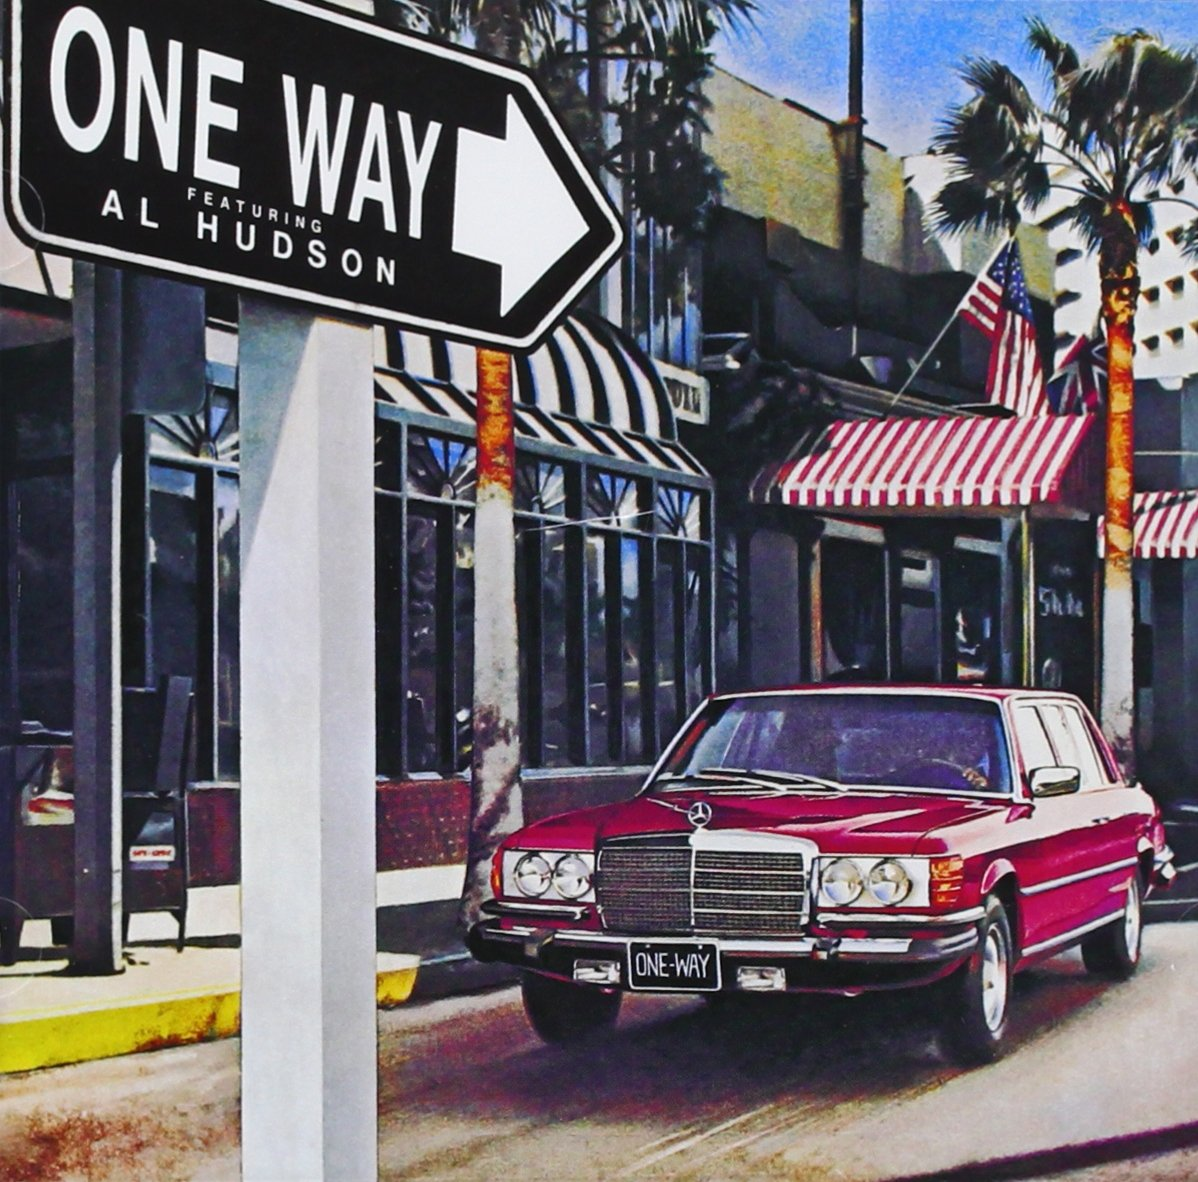 One Way Featuring Al Hudson 1980